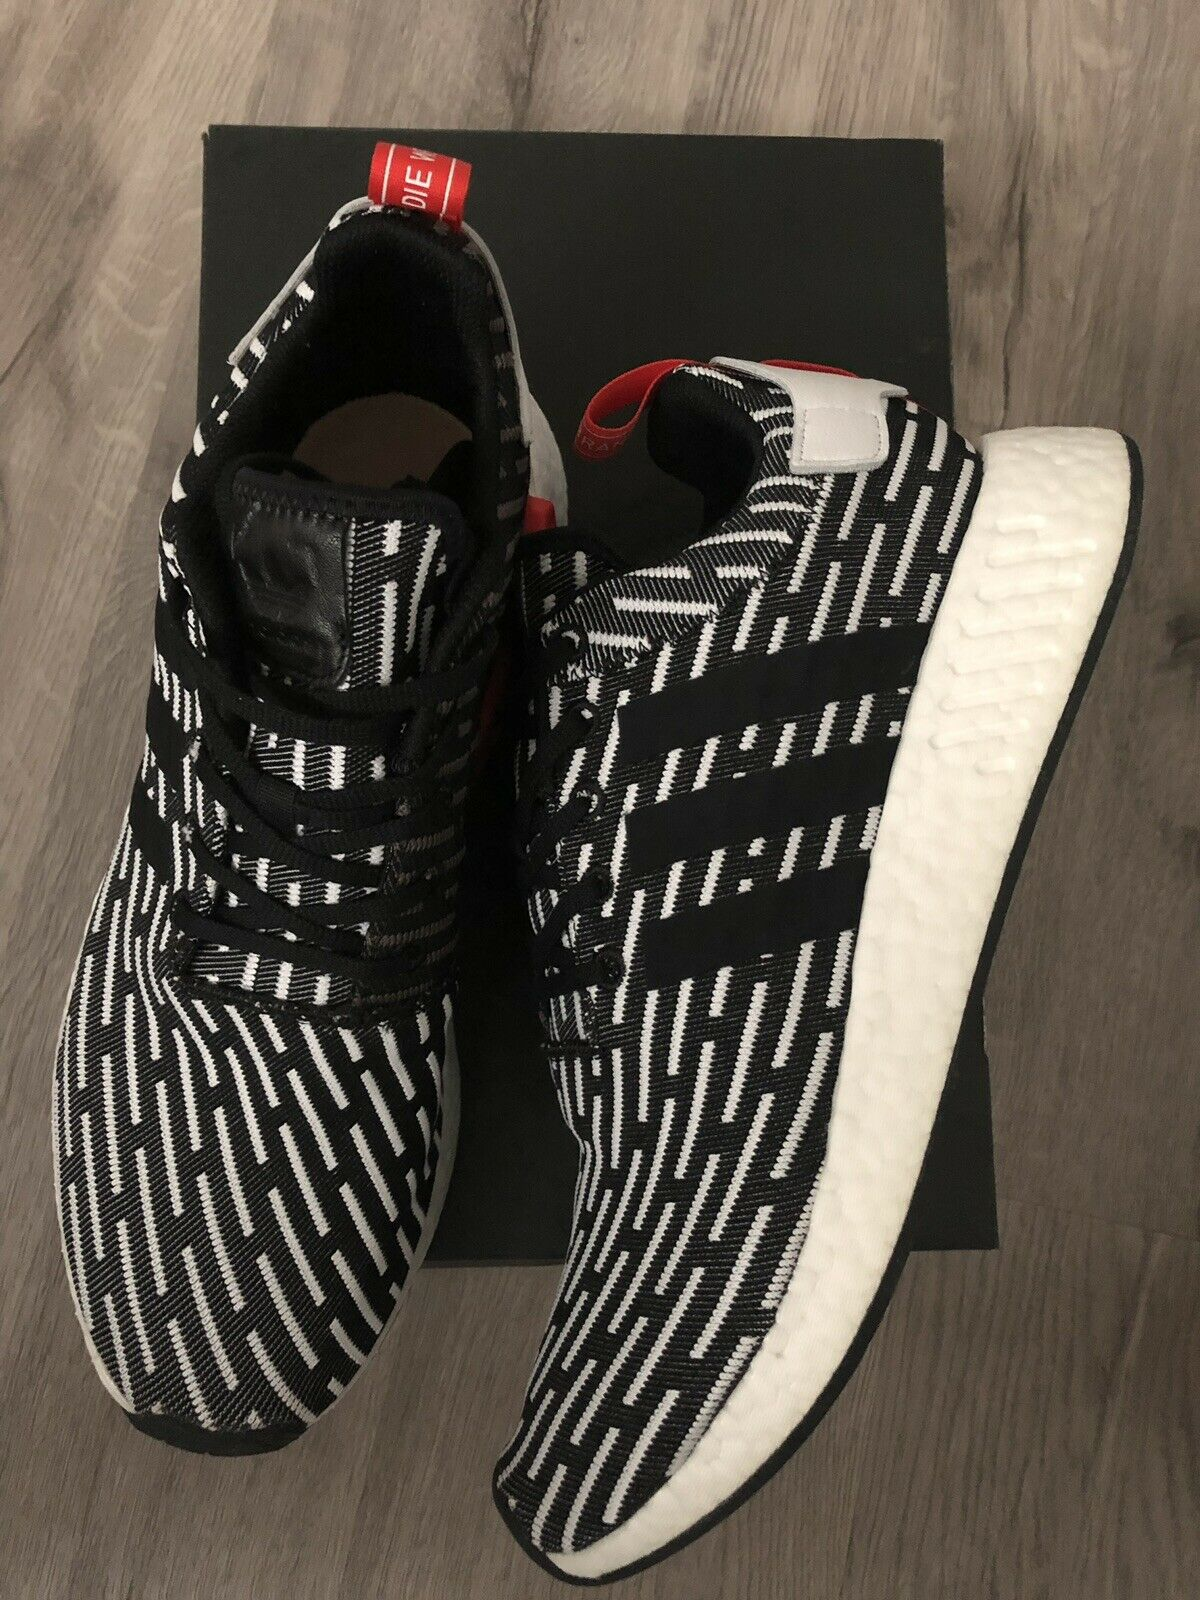 e68530830 R2 PK Size 13 Adidas NMD zefjjq5858-Athletic Shoes - hunting ...